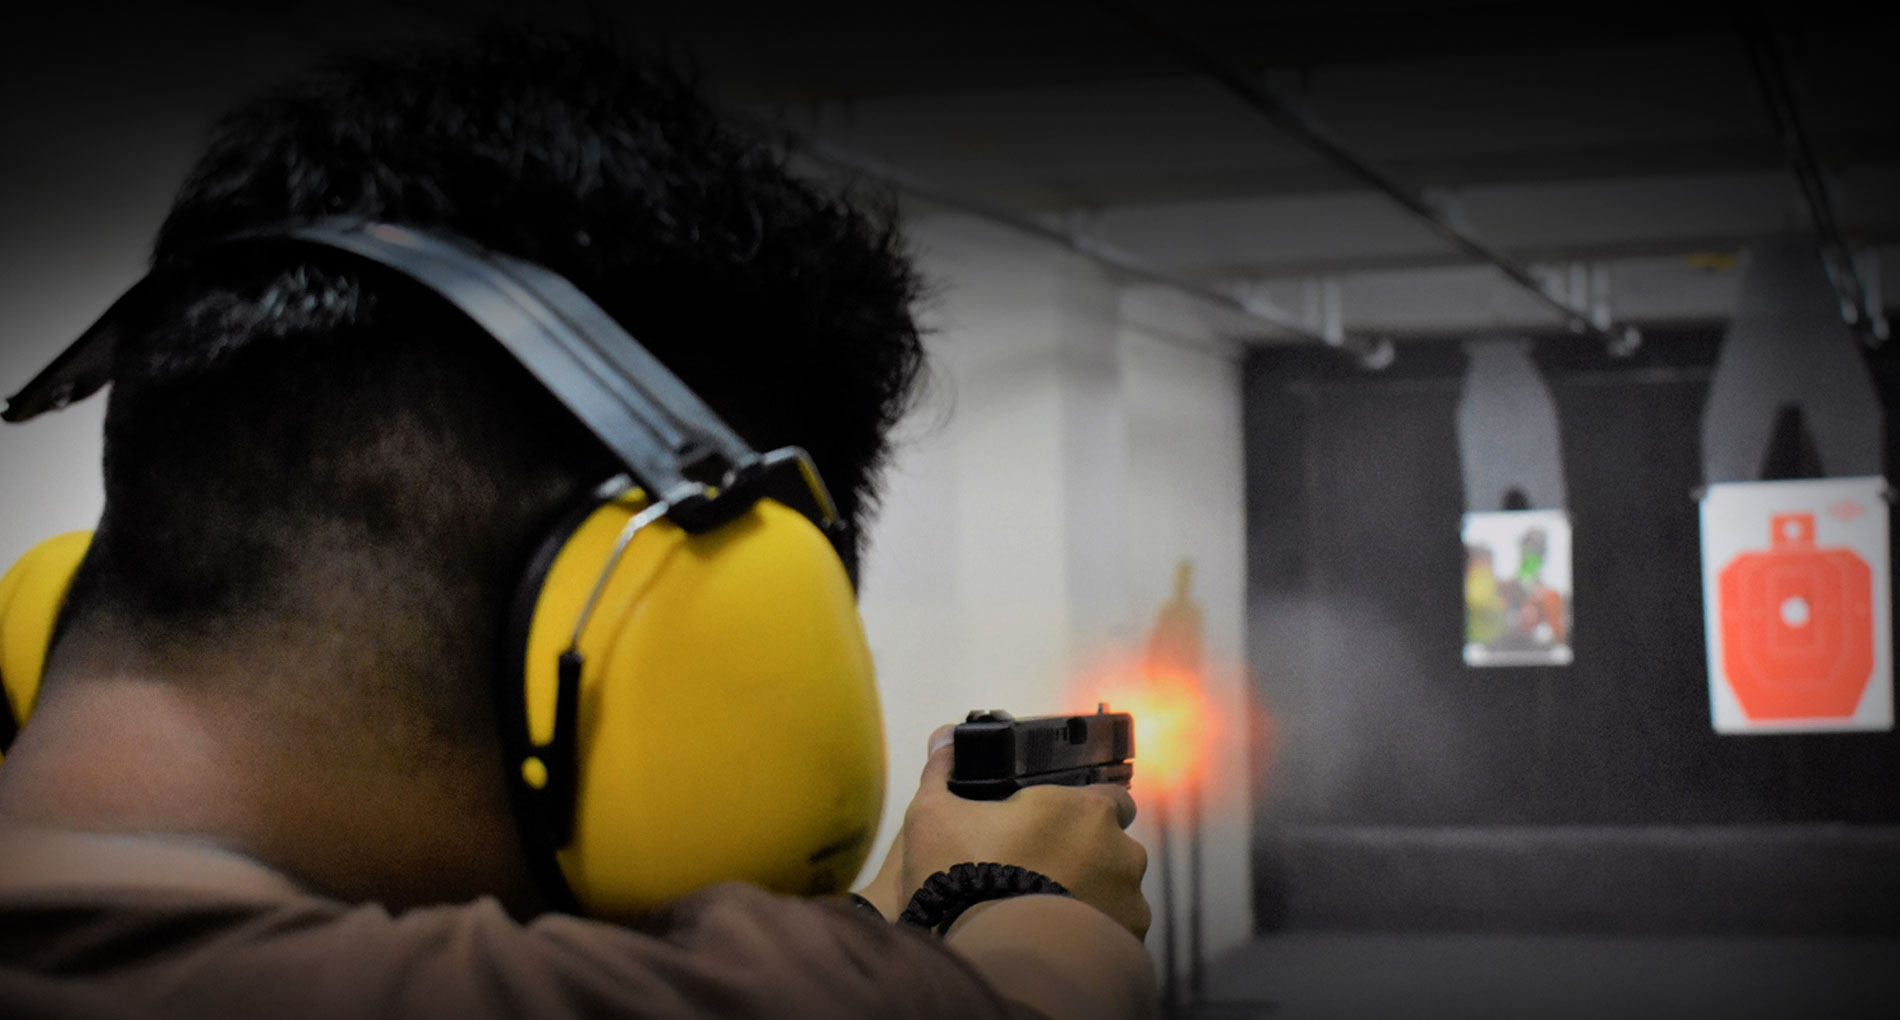 ARMSCOR Branches, Shooting and Firing Ranges in the Philippines